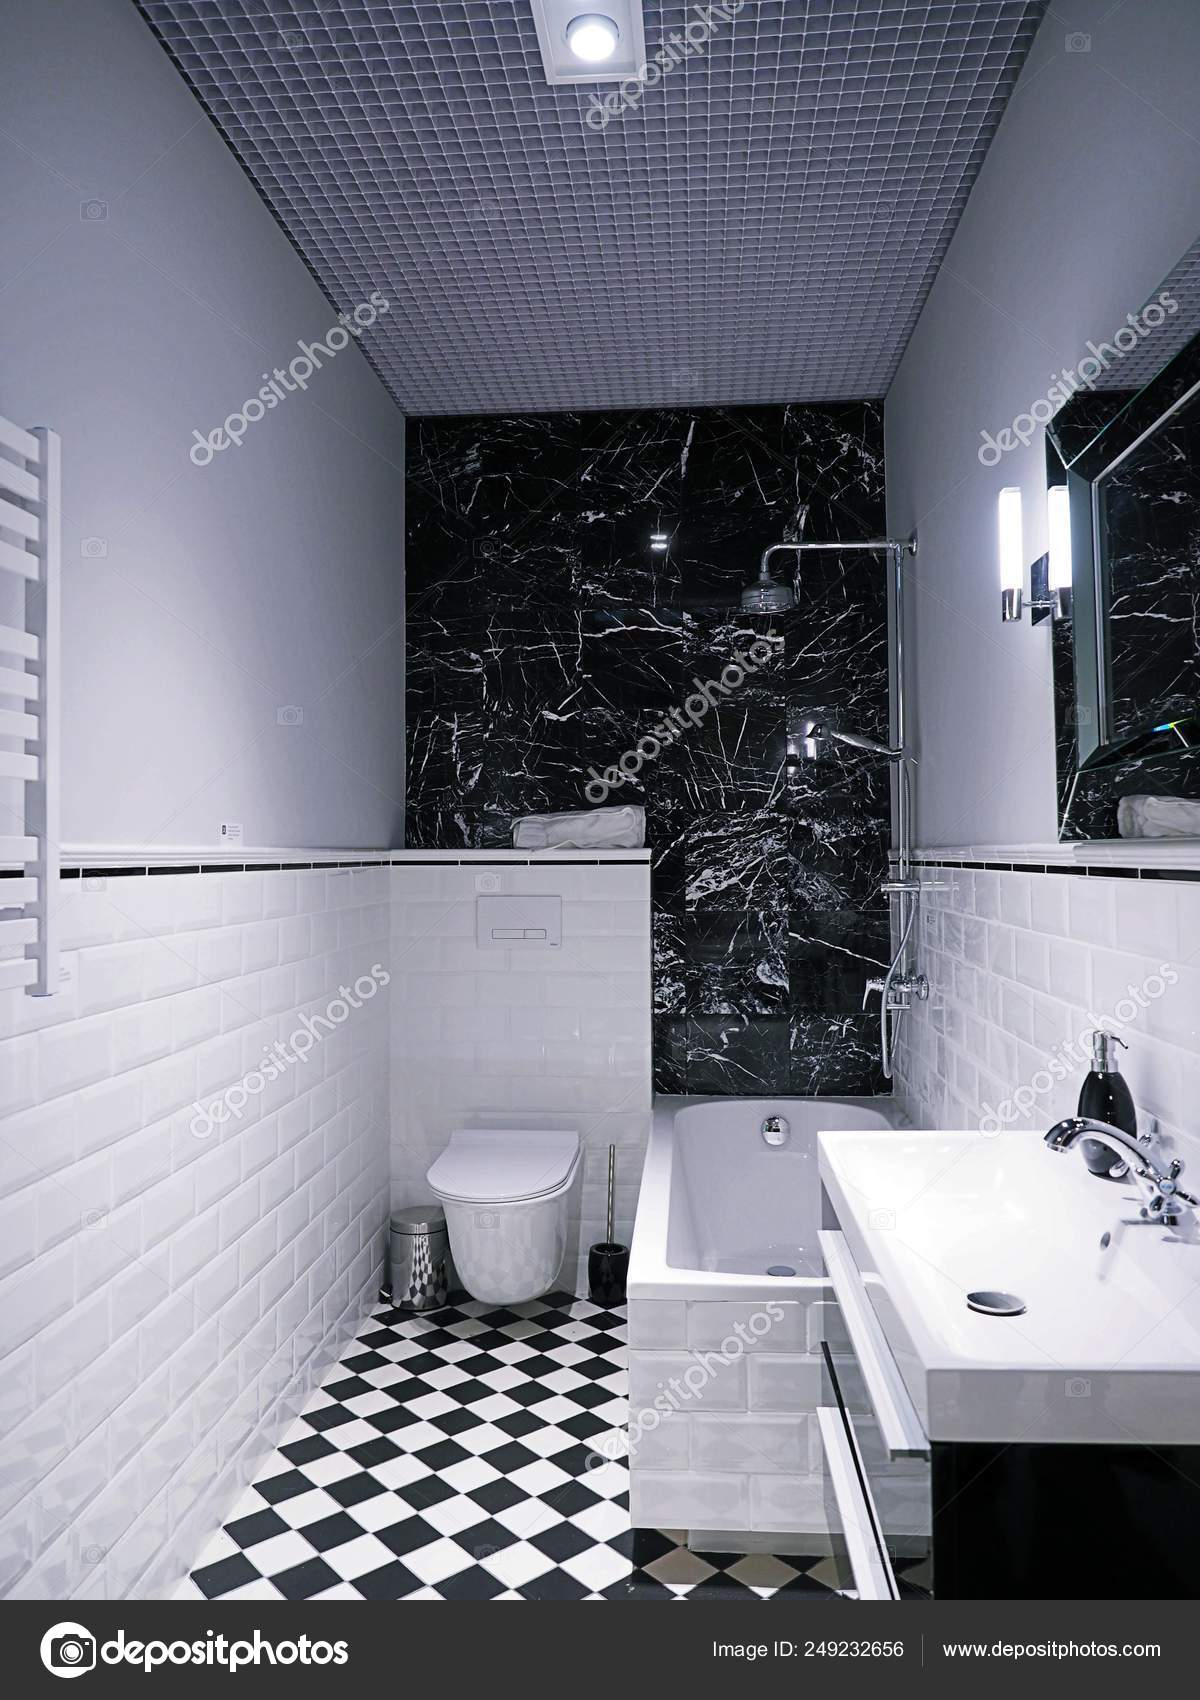 Bathroom Interior Decoration In A Store Leroy Merlin A French Headquartered Home Improvement And Gardening Retailer Serving Several Countries In Europe 1 October 2017 Poznan Poland Stock Editorial Photo C Digitalmammoth 249232656